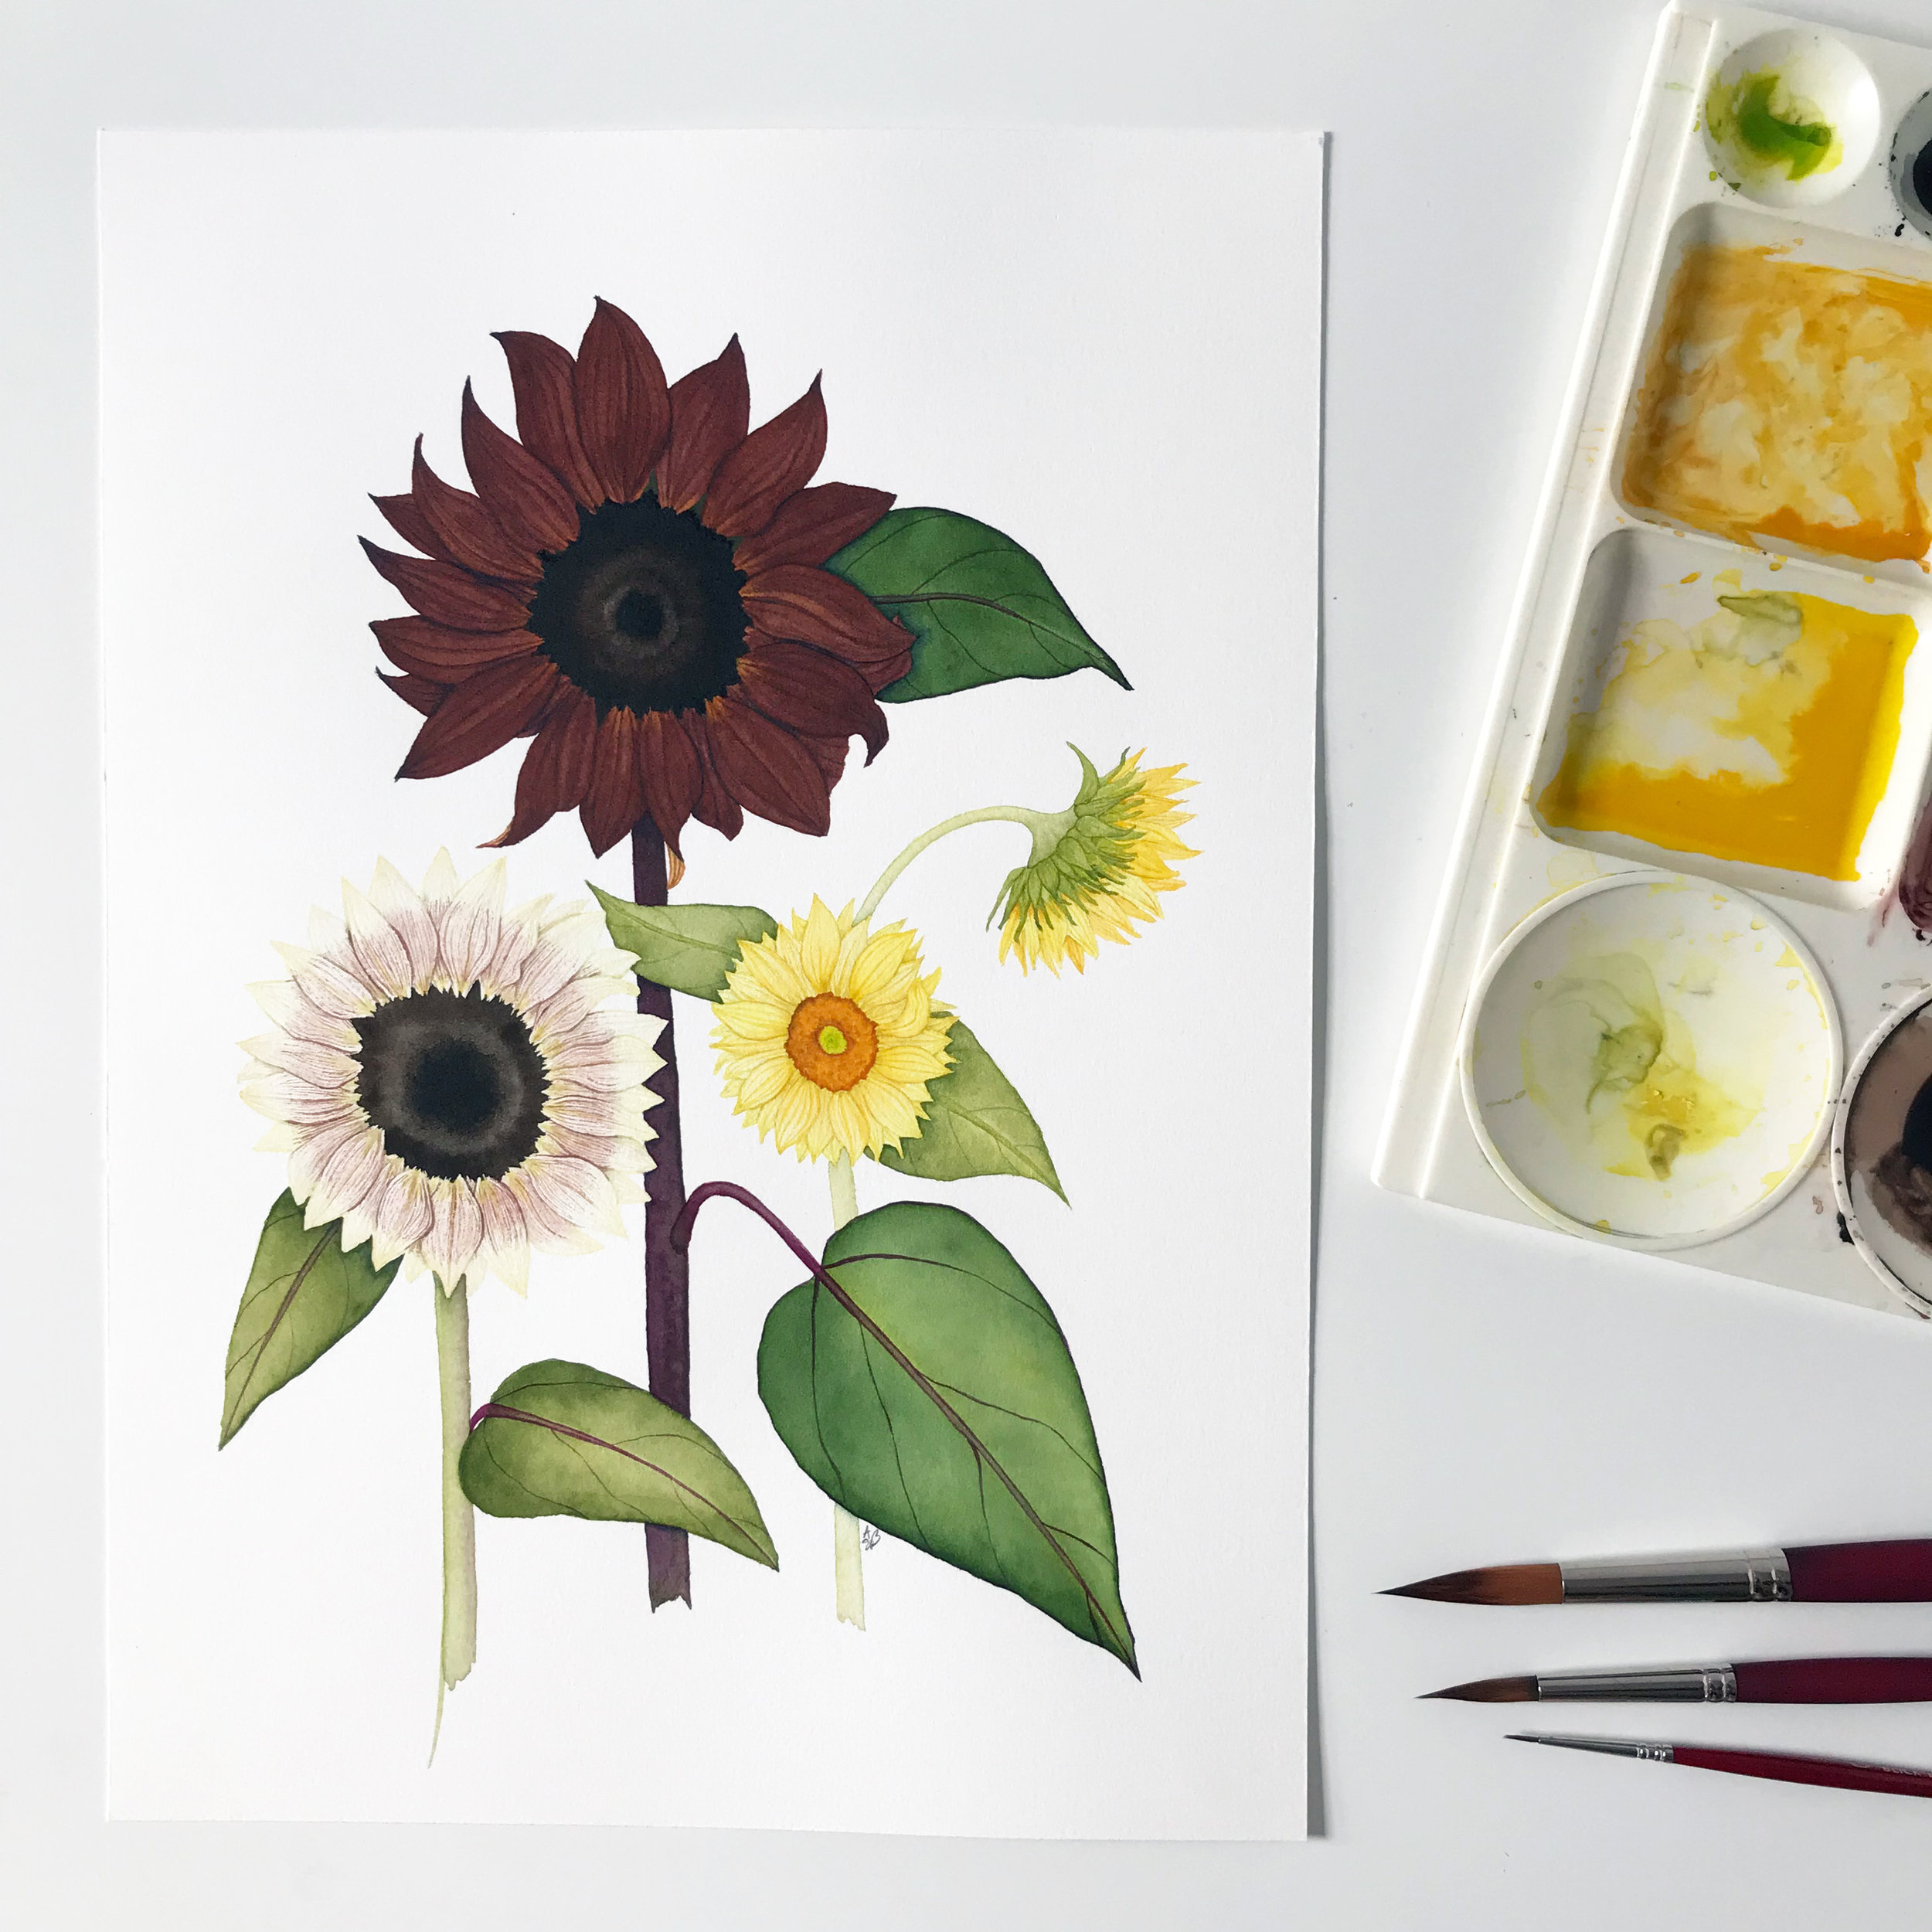 A Finished Watercolor Painting of Summer Sunflowers by Anne Butera of My Giant Strawberry